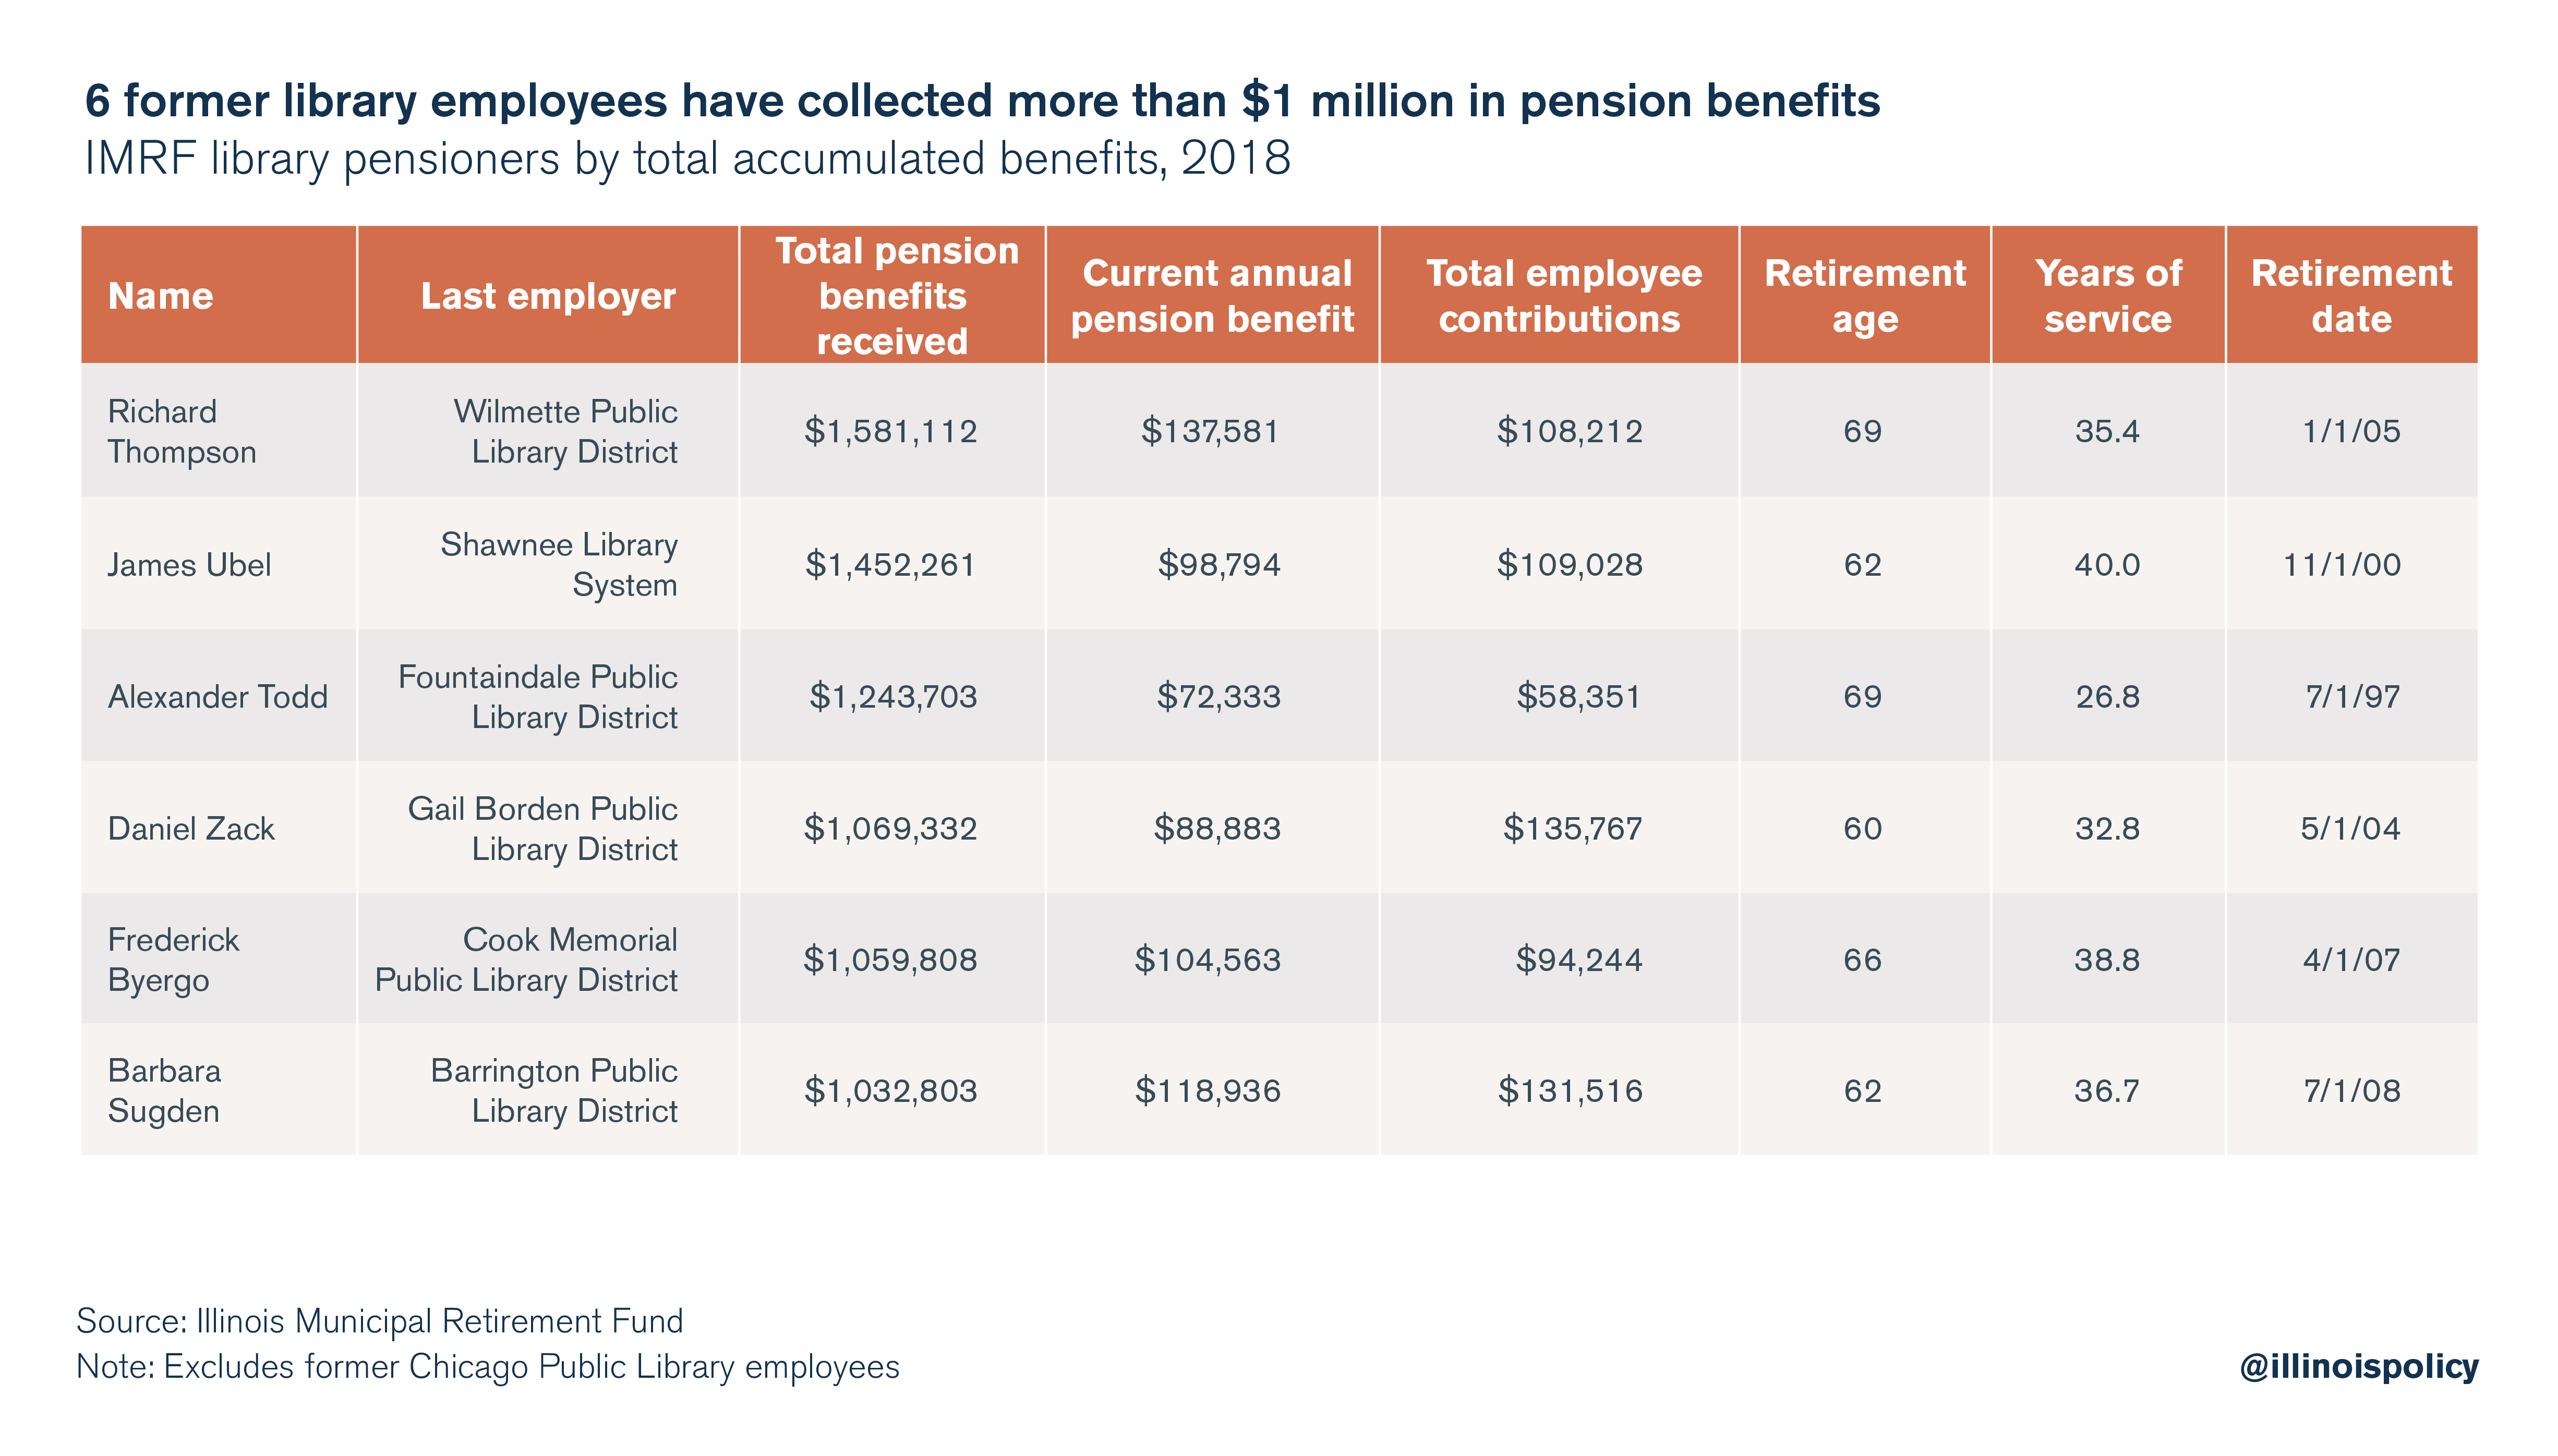 6 former library employees have collected more than $1 million in pension benefits